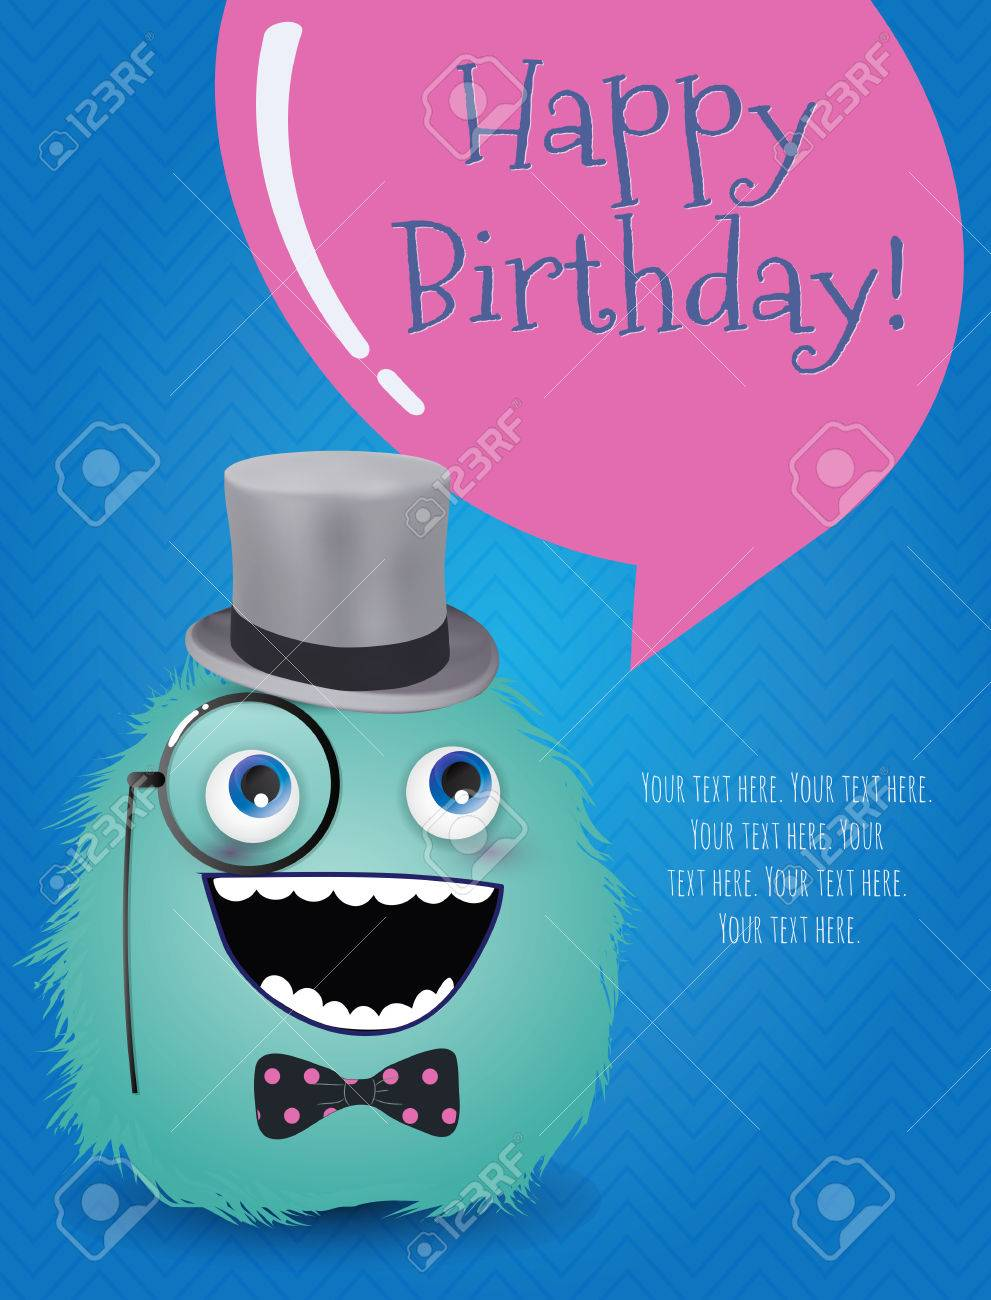 Hipster Monster Happy Birthday Card Illustration Royalty Free – Hipster Birthday Cards